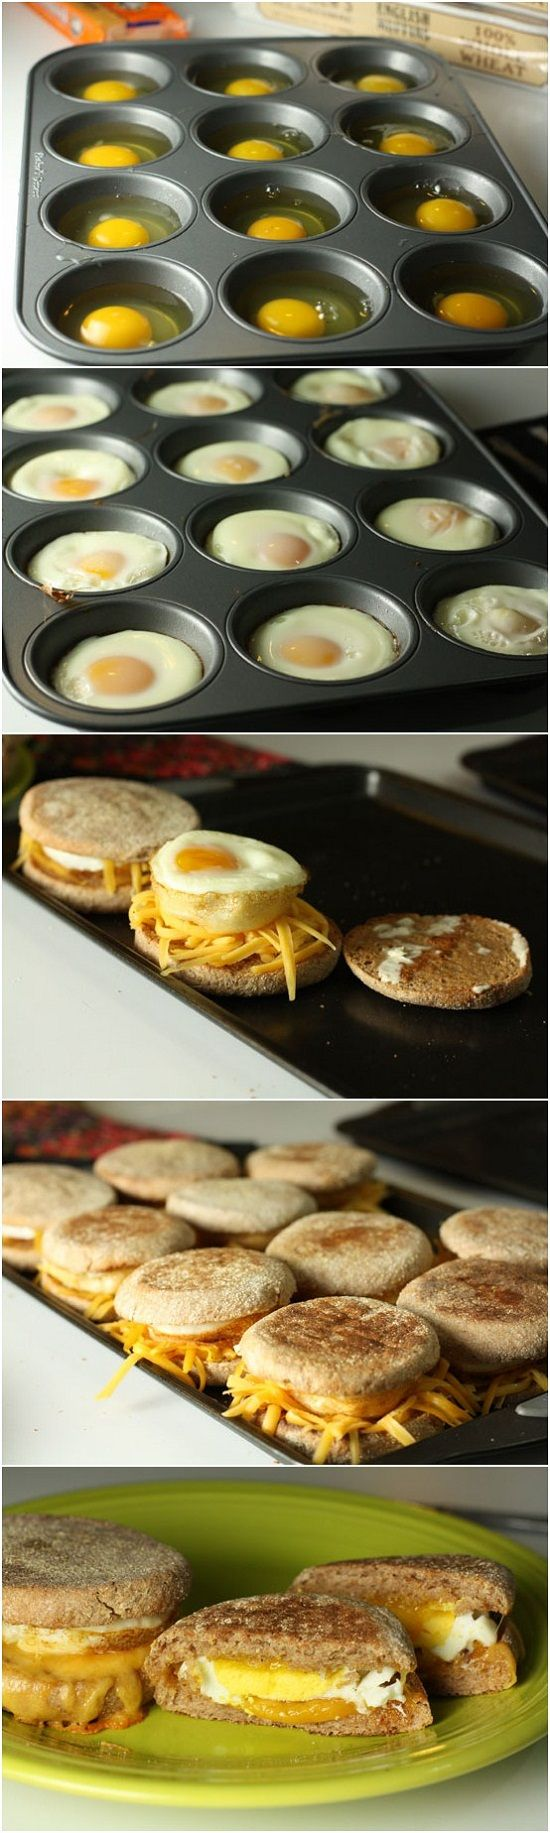 Best Recipes, #17 Breakfast Sandwiches